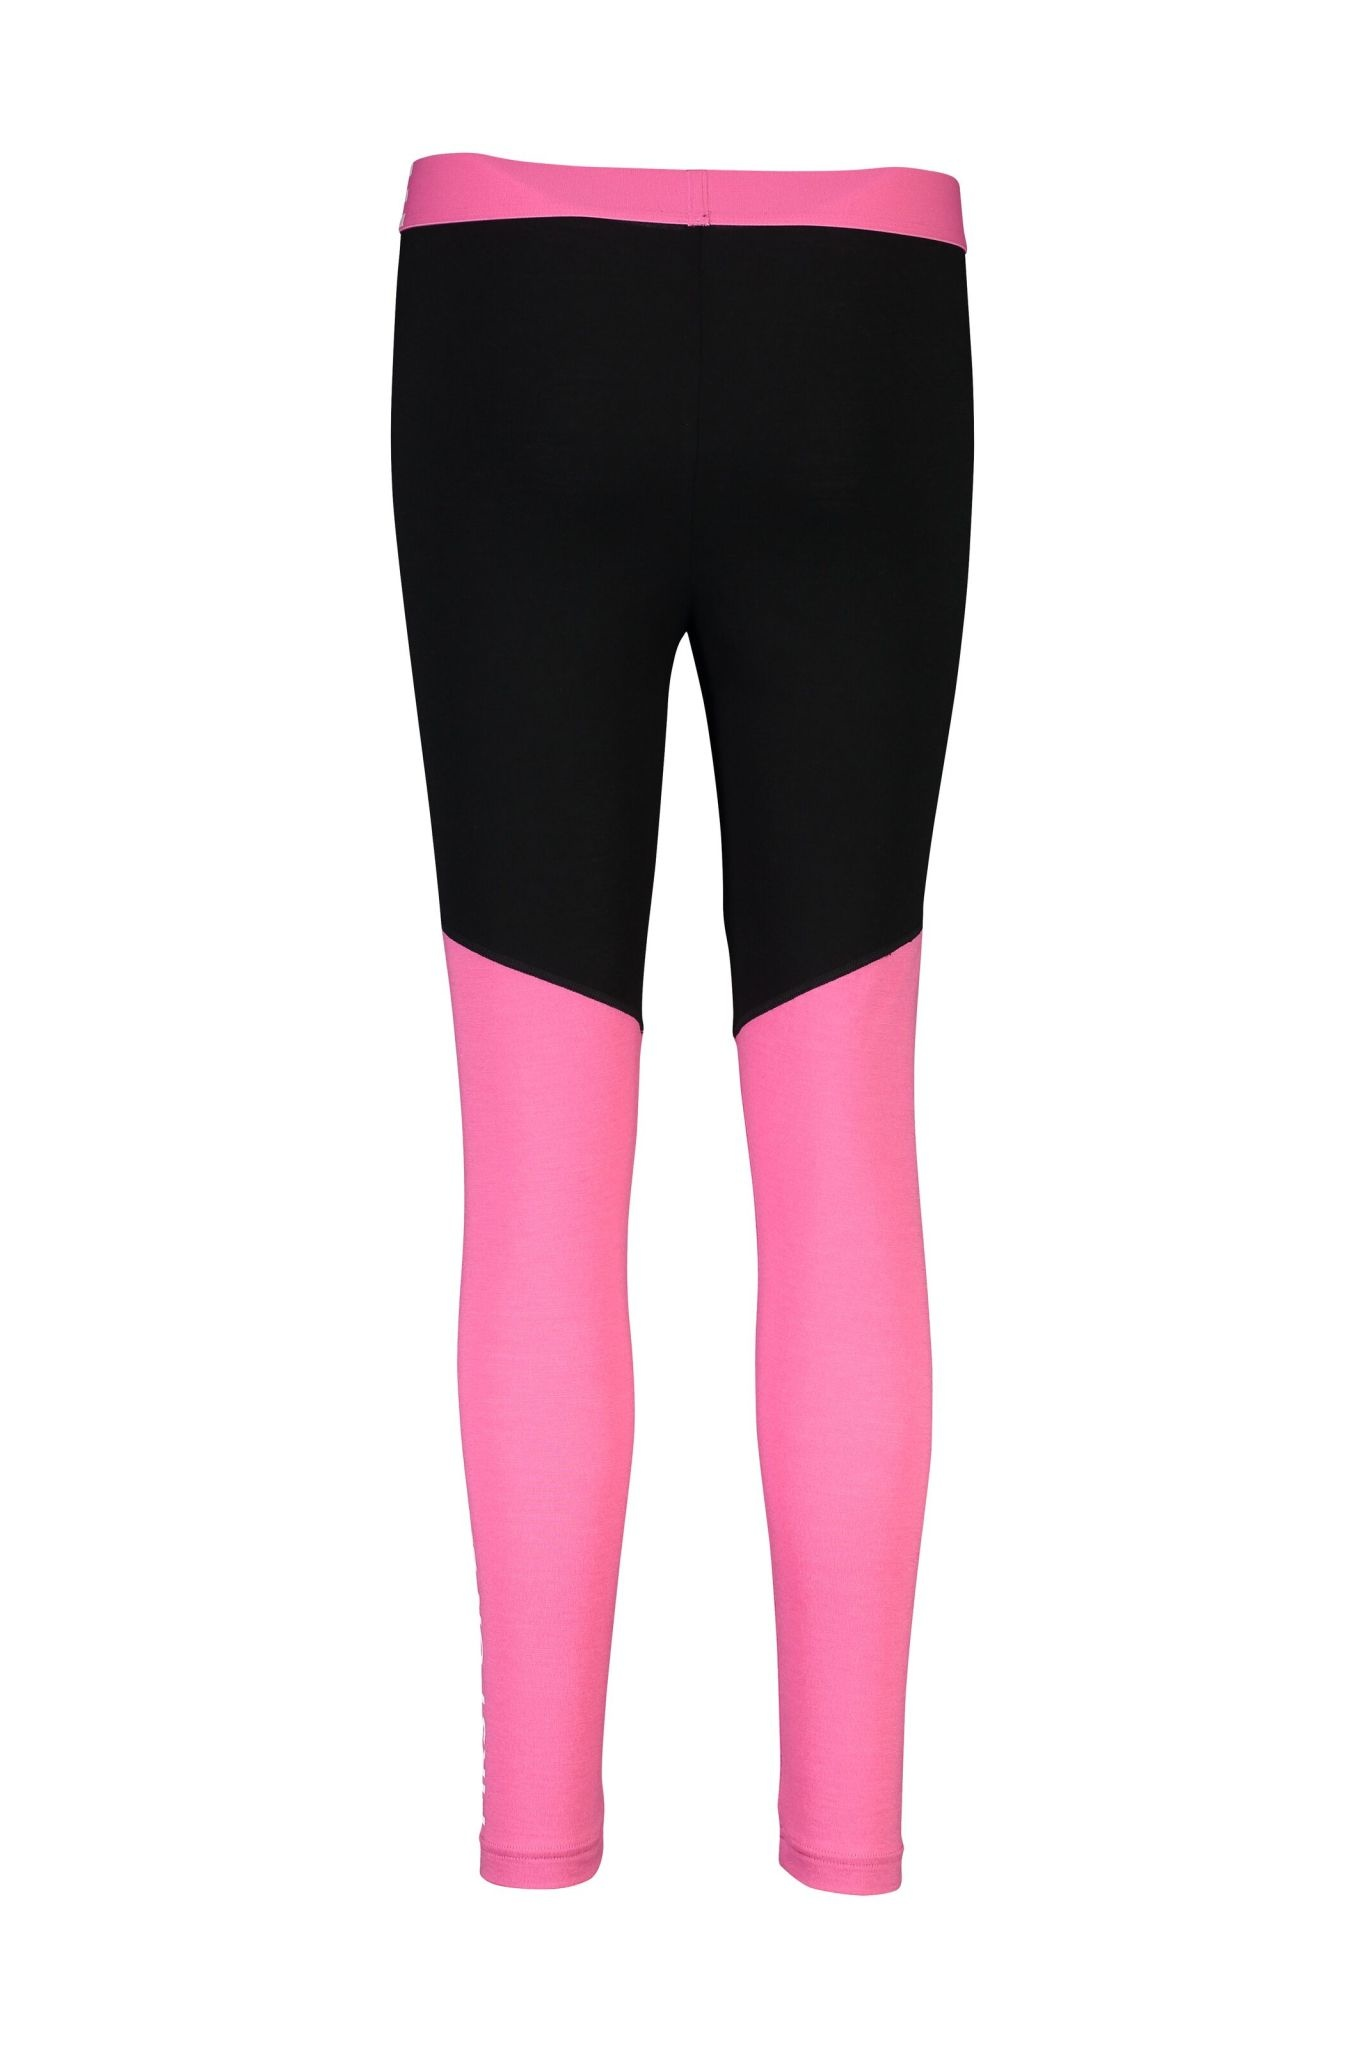 MONS ROYALE Mons Royale Women's Christy Legging